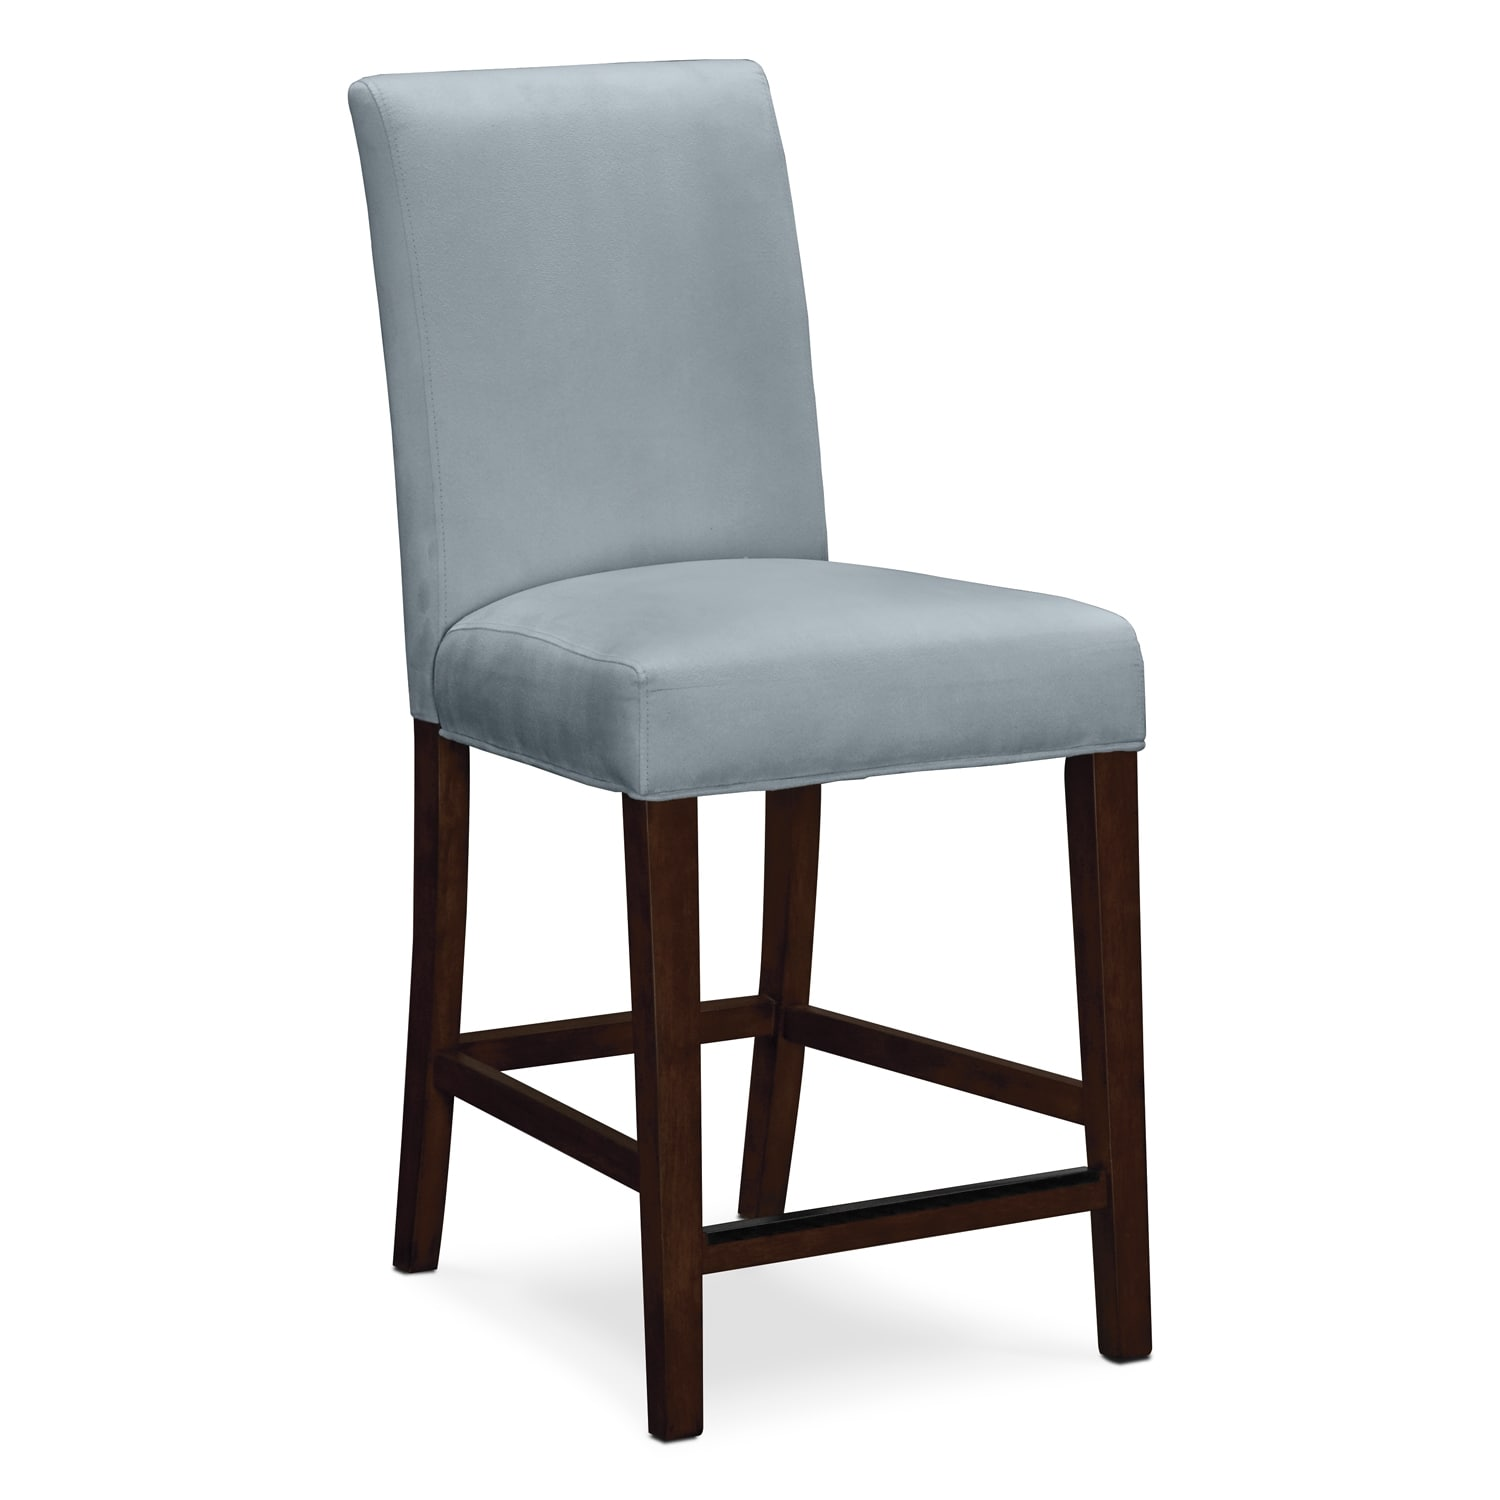 Dining Room Furniture - Alcove Counter-Height Stool - Aqua